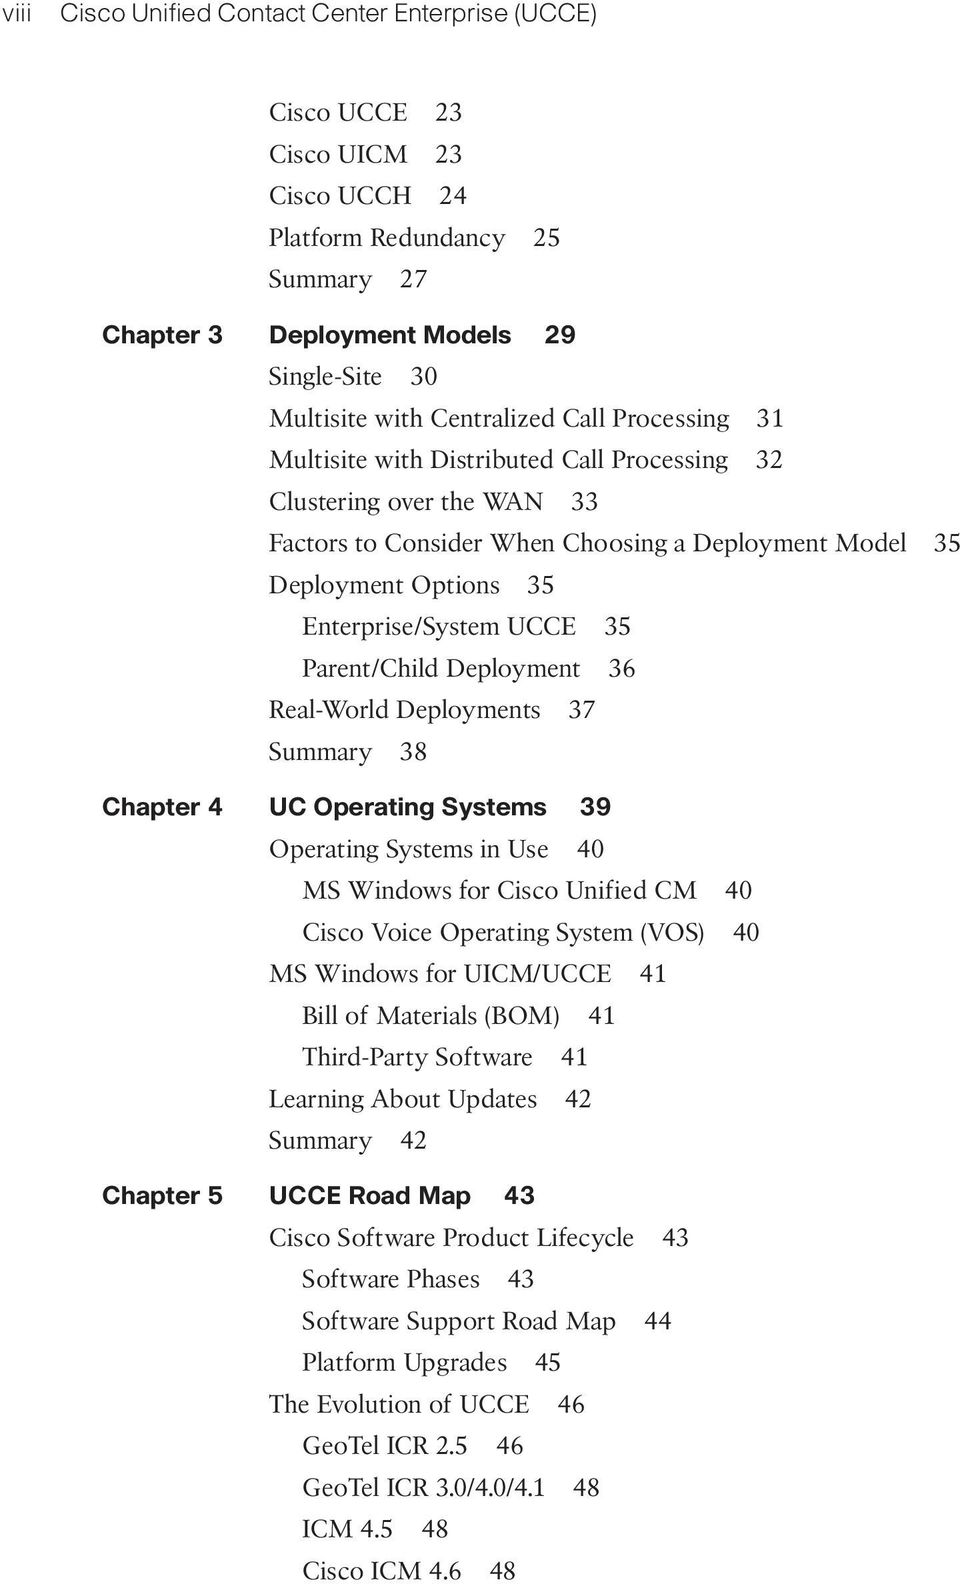 UCCE 35 Parent/Child Deployment 36 Real-World Deployments 37 Summary 38 Chapter 4 UC Operating Systems 39 Operating Systems in Use 40 MS Windows for Cisco Unified CM 40 Cisco Voice Operating System